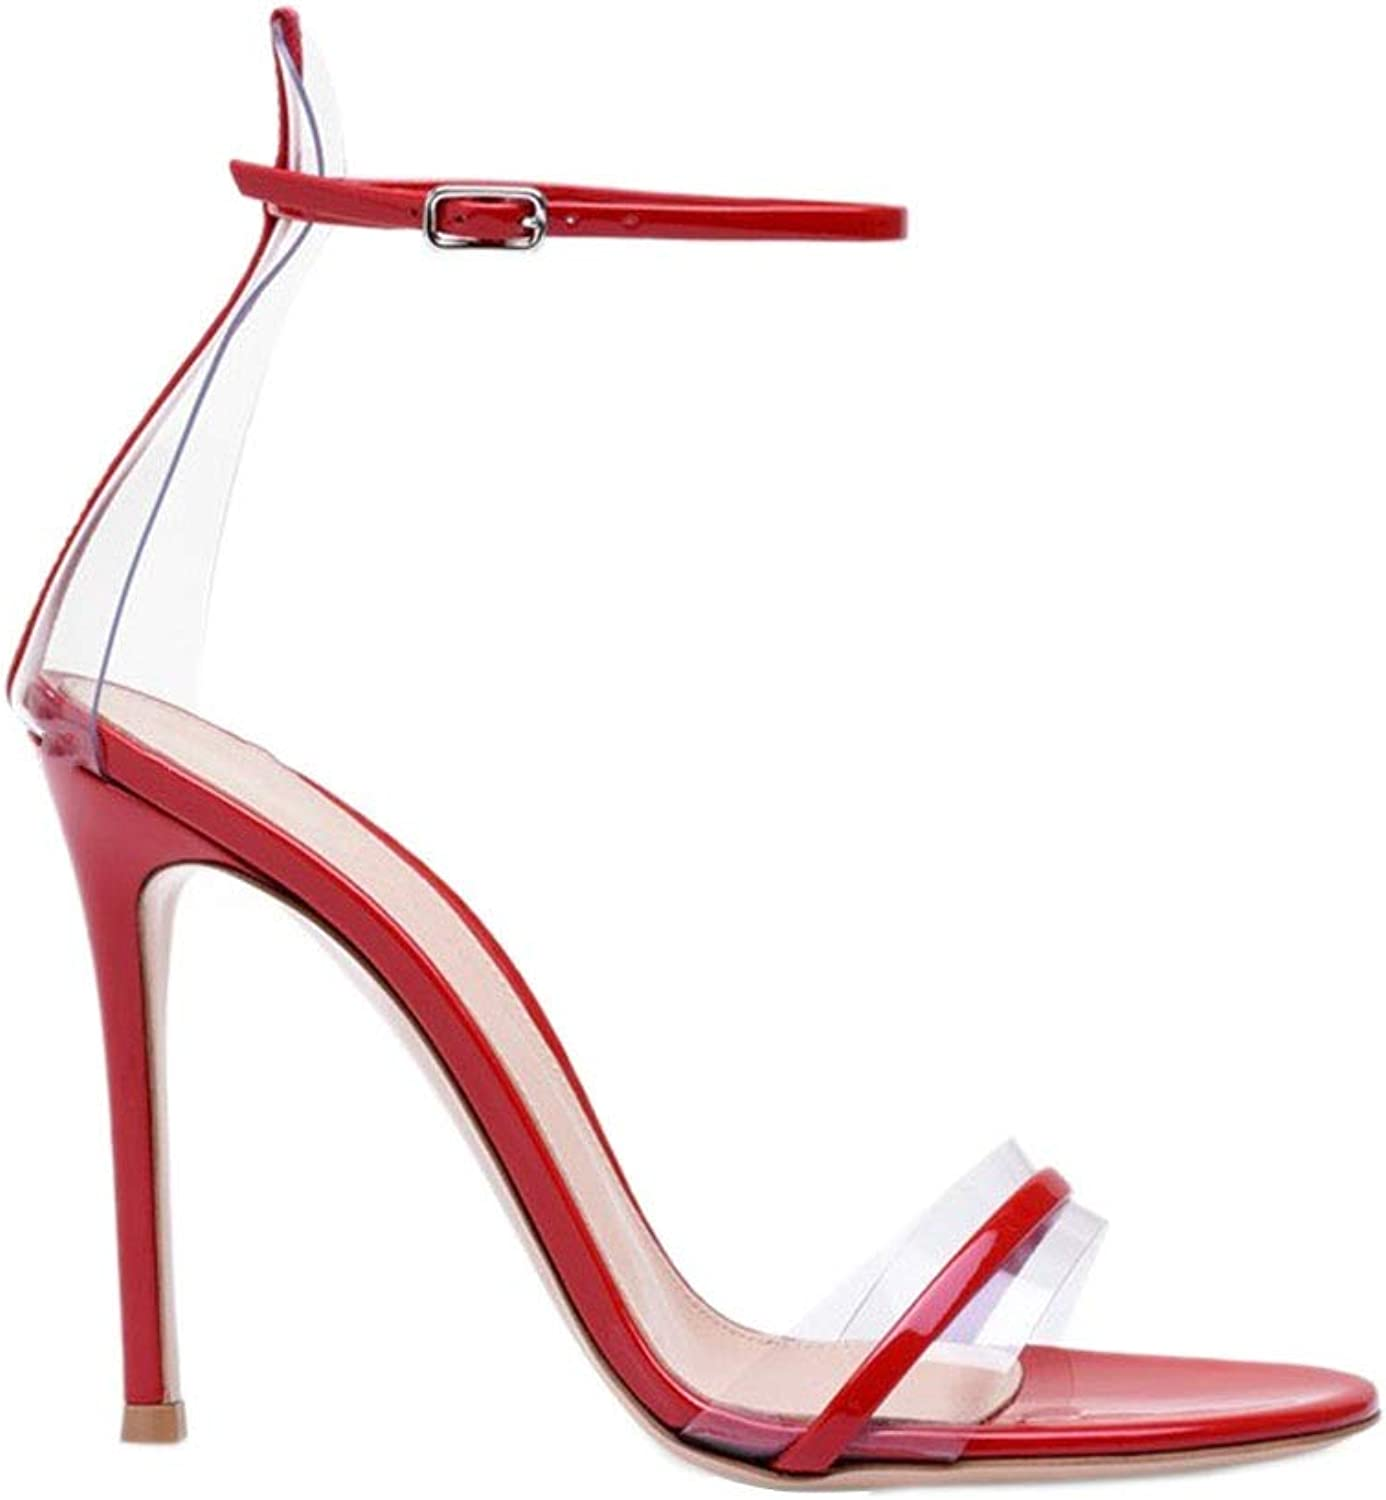 Sandals Sandals Summer Open Toe Transparent High Heel Sandals High Heel Sexy Nightclub Word Buckle with Sandals Dating shoes, High Heels 8cm (color   Red, Size   34)